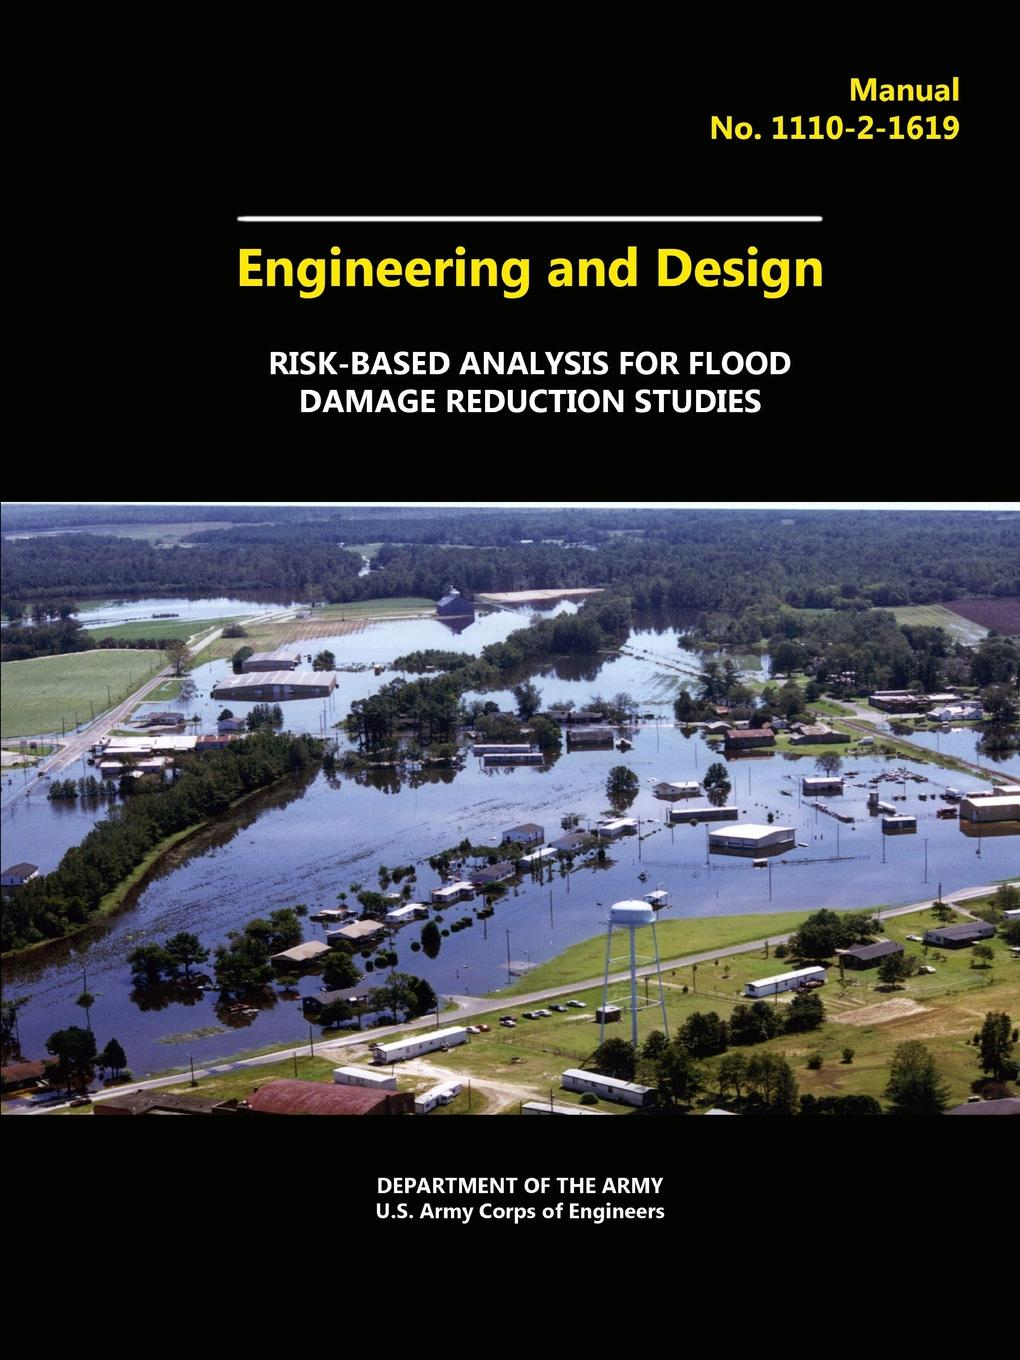 U.S. Army Corps of Engineers, Army Department of the Engineering and Design - Risk-Based Analysis for Flood Damage Reduction Studies surafel mamo woldegbrael flood forecasting conterol and modeling for flood risk management systems